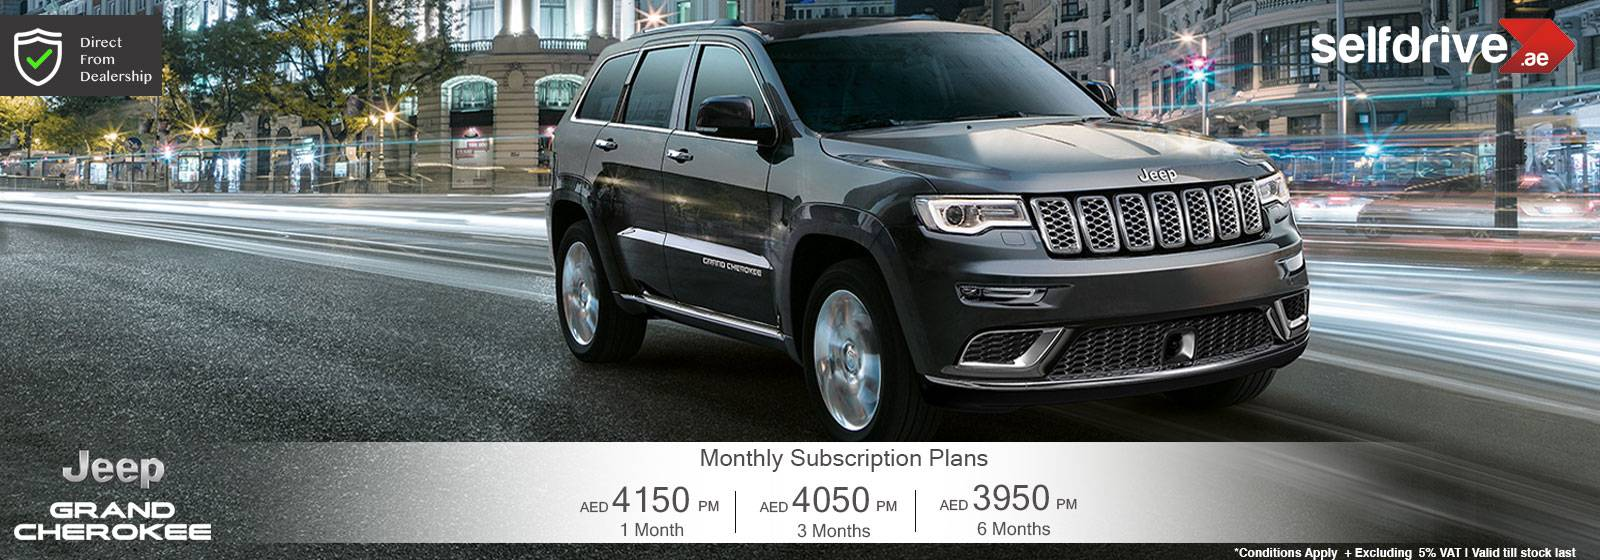 Rent a Car Dubai Jeep Grand Cherokee